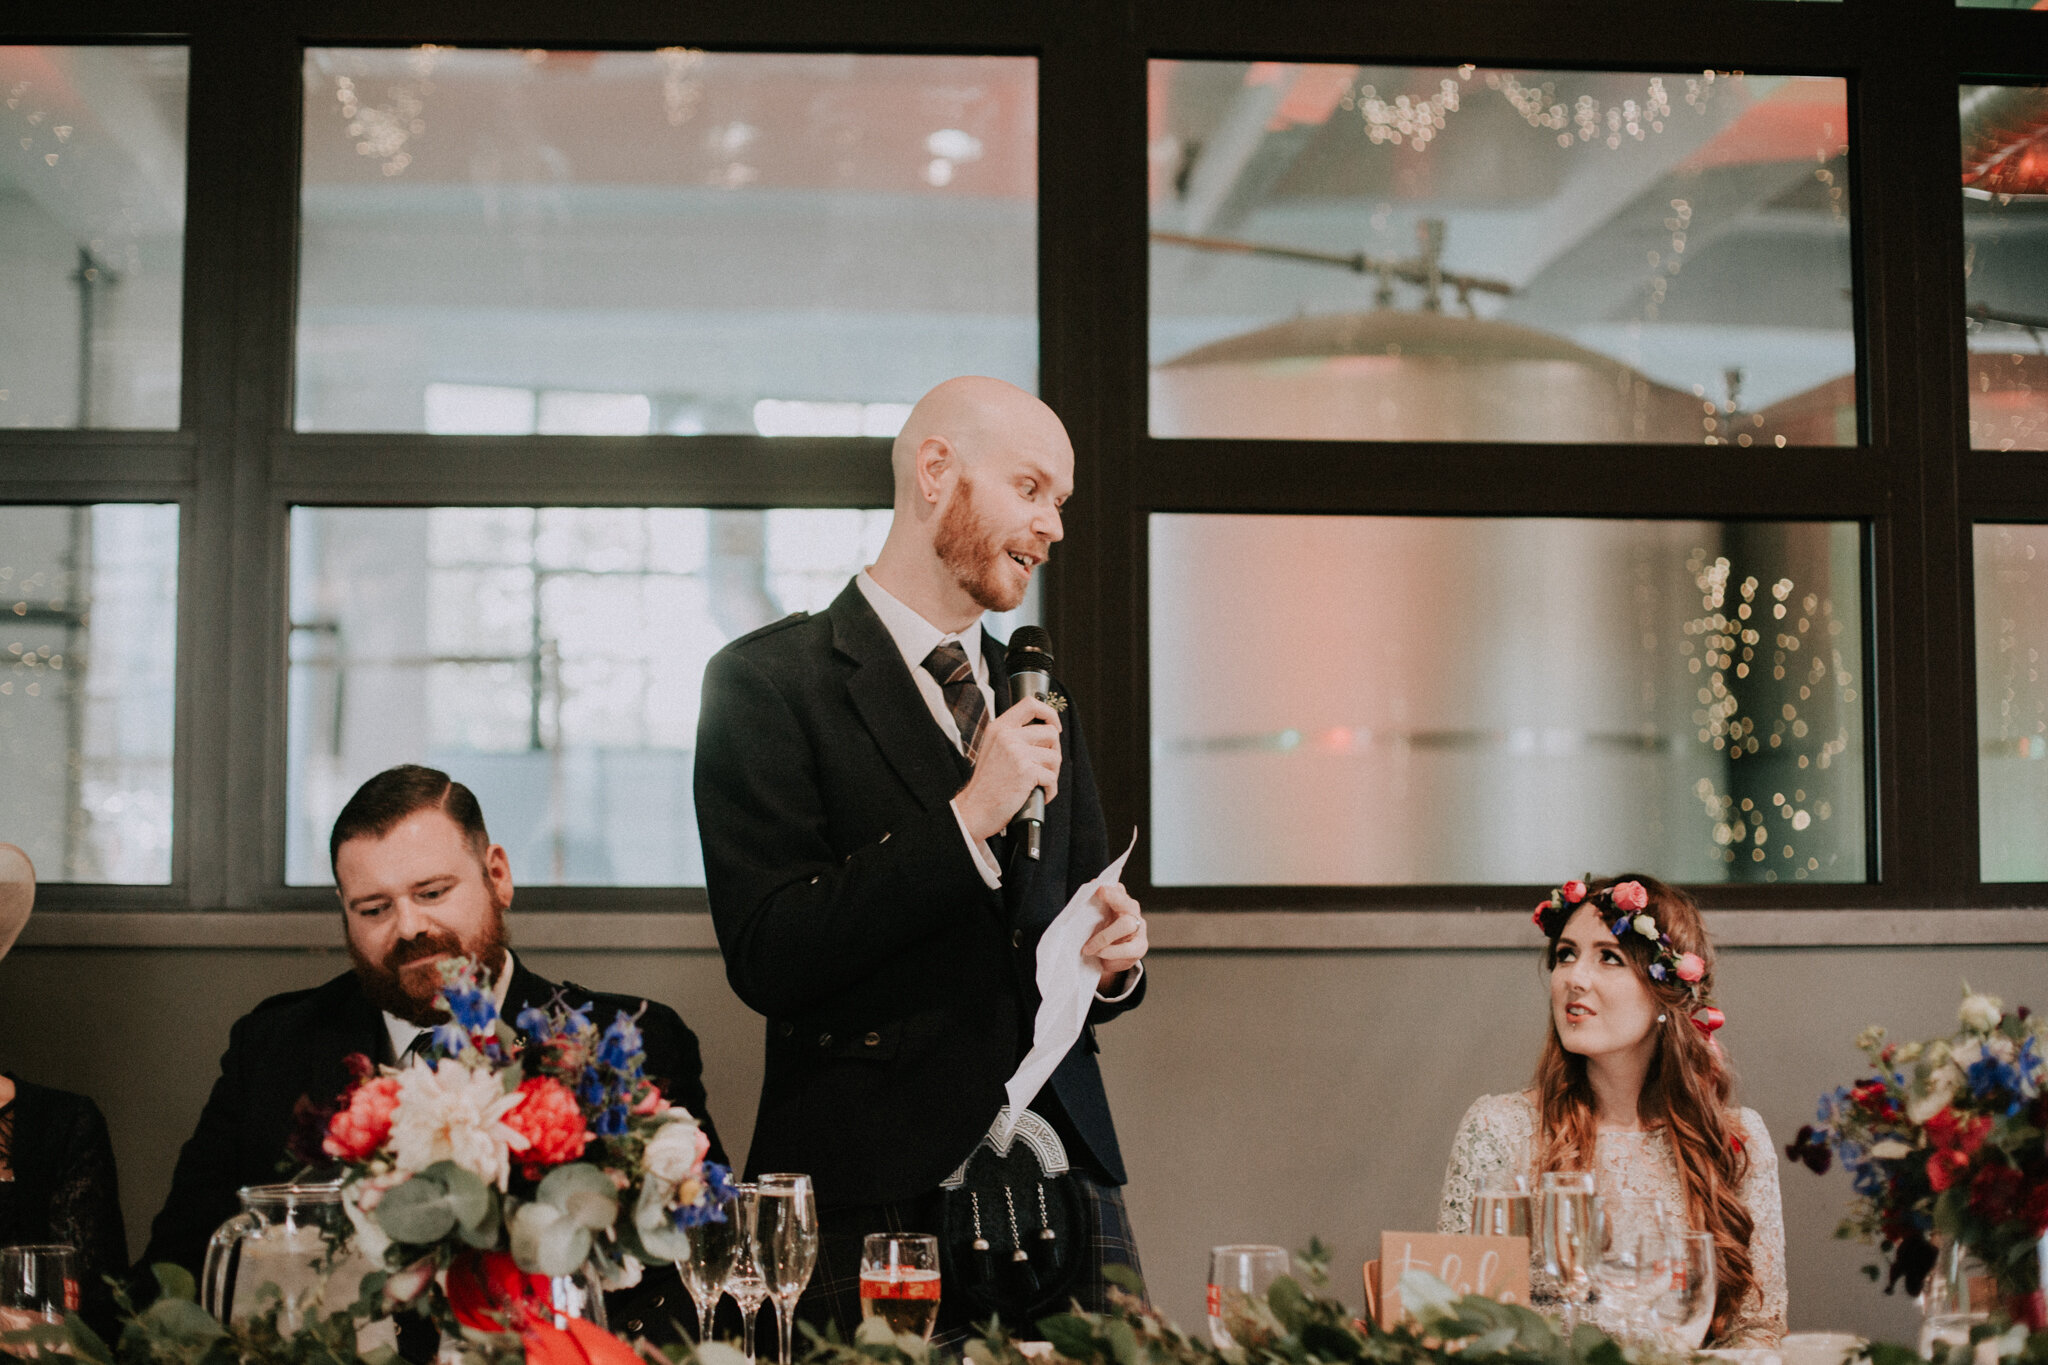 The groom is giving a speech at West Brewery